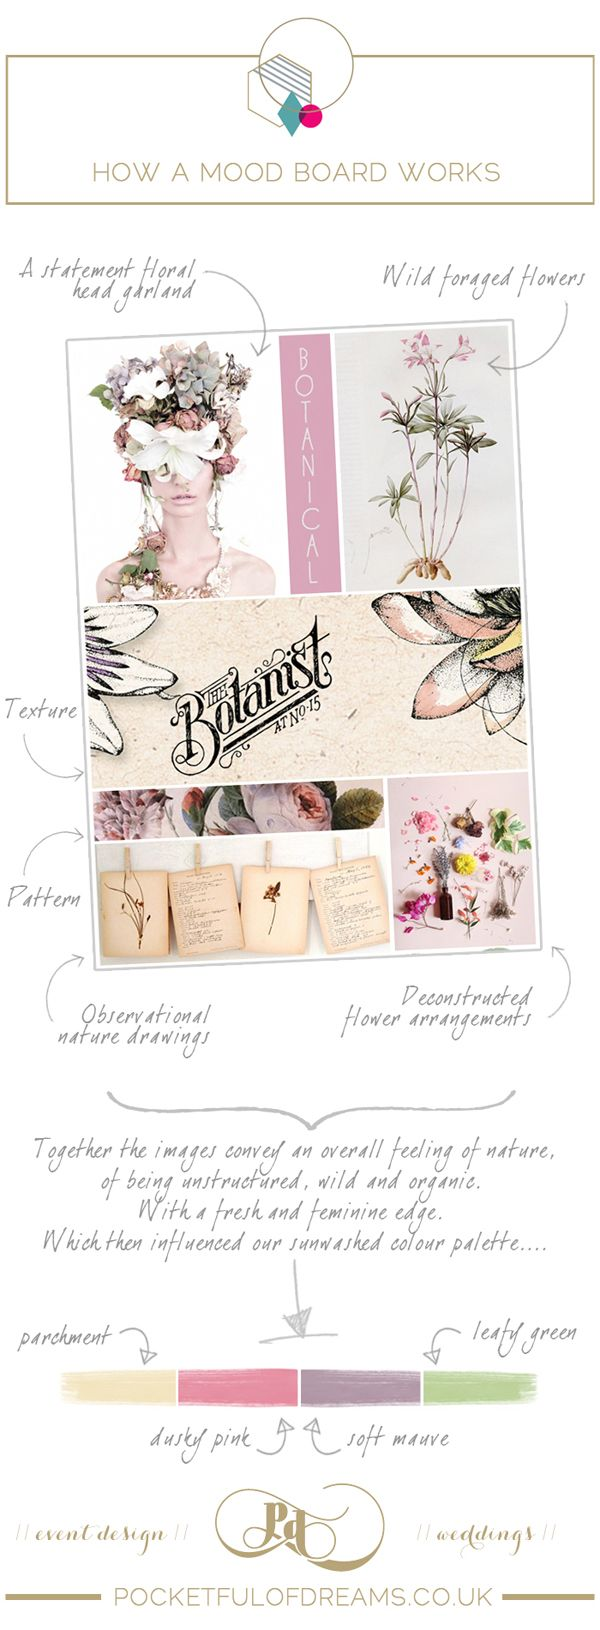 Botanical Bridal Inspiration Board ~ From inspiration board to reality by http://www.pocketfulofdreams.co.uk/